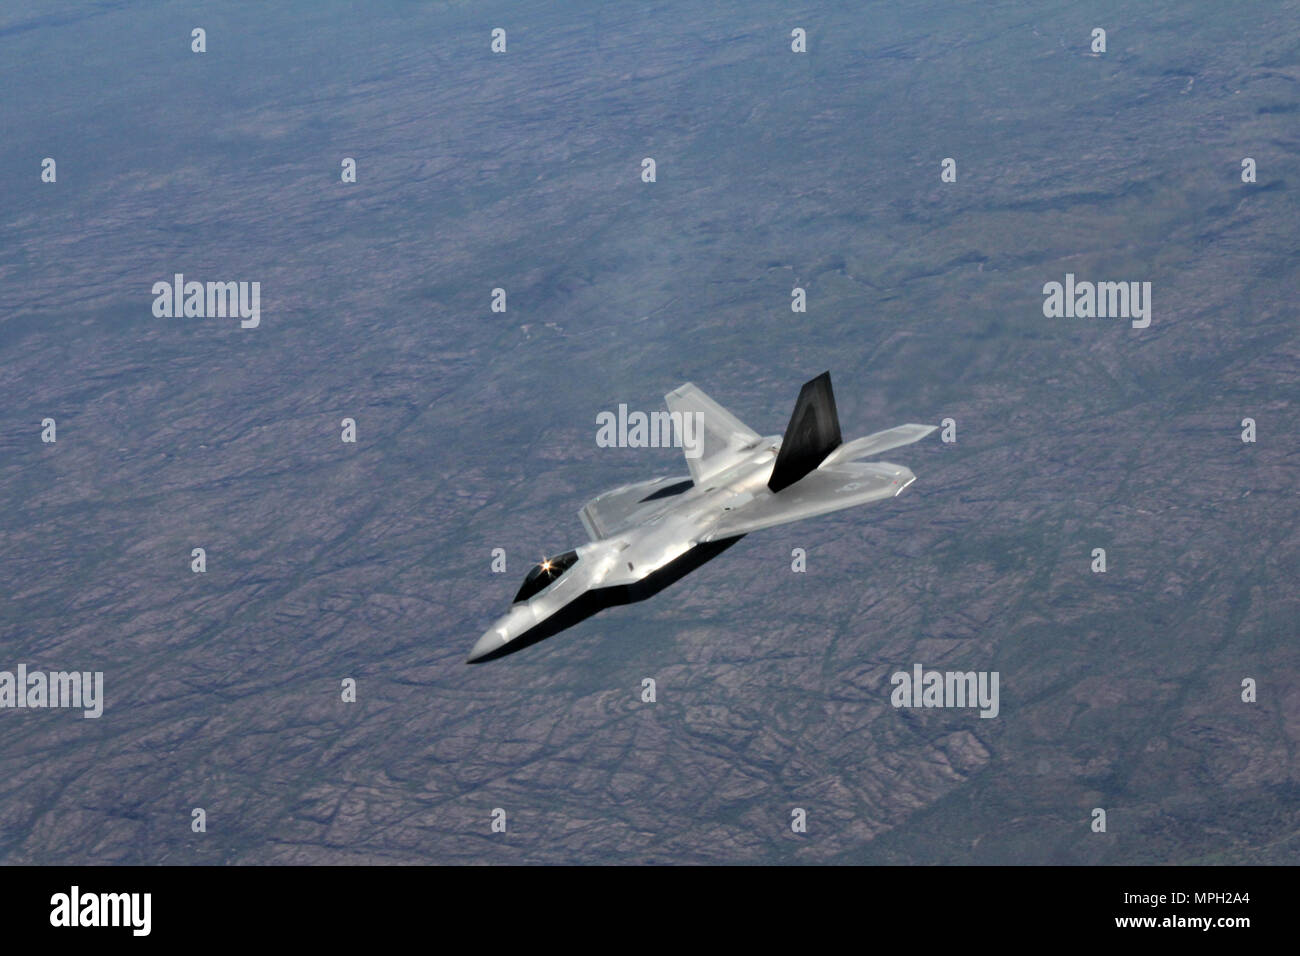 A U.S. Air Force F-22 Raptor flies above Royal Australian Air Force Base Tindal, Australia, March 2, 2017. Twelve F-22 Raptors and approximately 200 U.S. Air Force Airmen participated in the first Enhanced Air Cooperation, an initiative under the Force Posture Agreement between the U.S. and Australia. (U.S. Air Force photo by Maj. Lori Hodge) - Stock Image